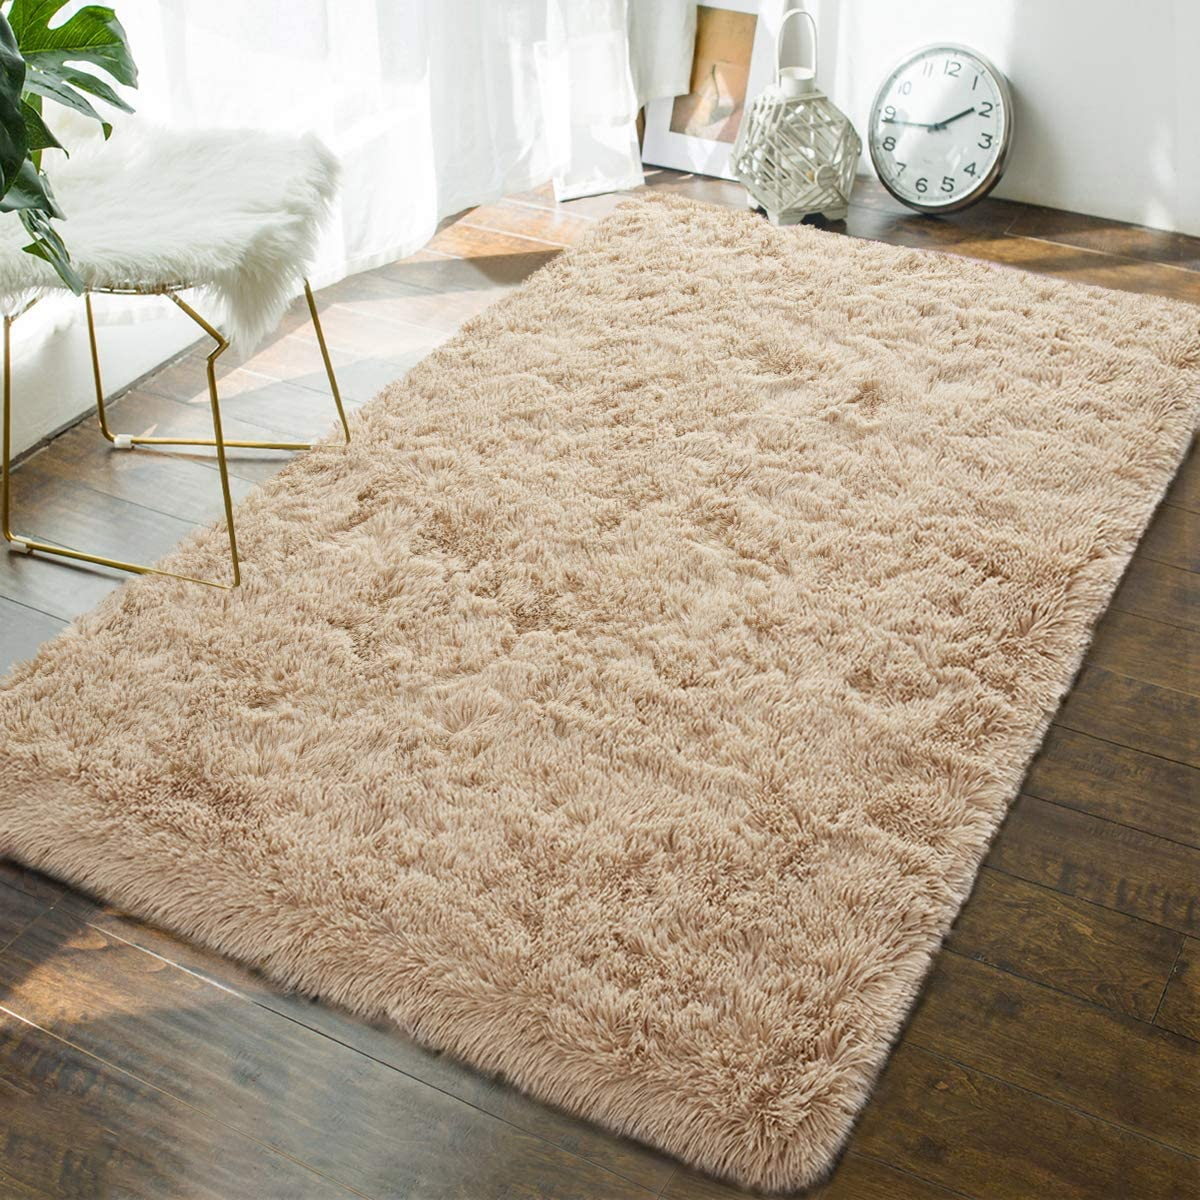 Andecor Soft Fluffy Bedroom Rugs - 4 x 6 Feet Indoor Shaggy Plush Area Rug for Boys Girls Kids Baby College Dorm Living Room Home Decor Floor Carpet, Camel